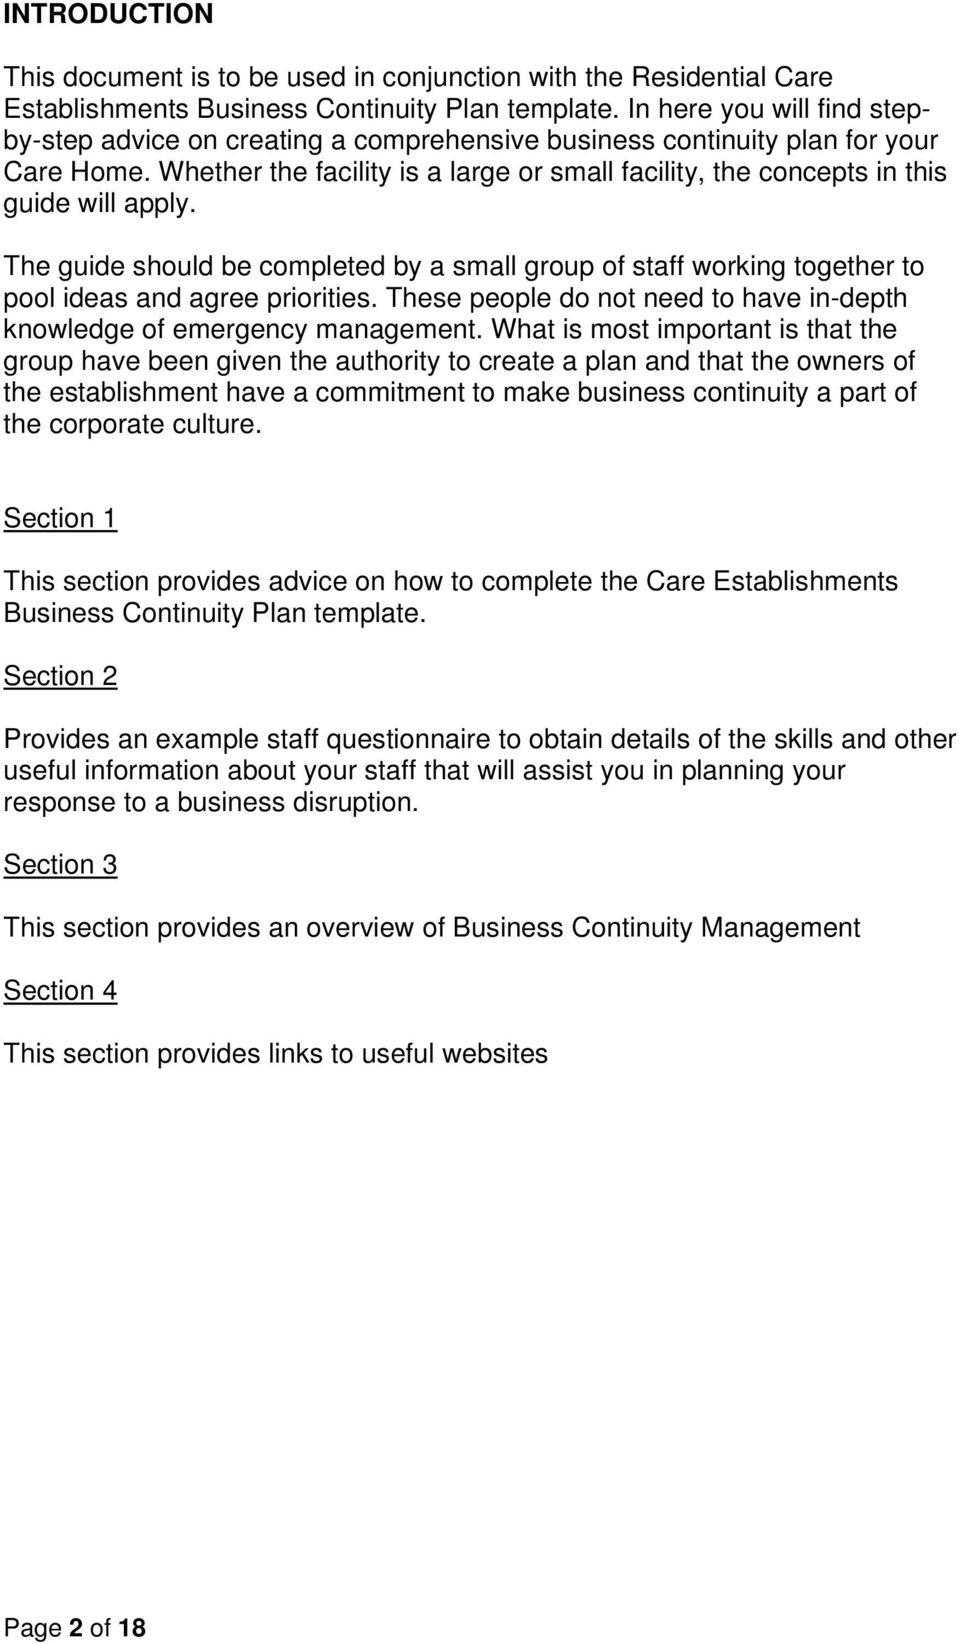 GUIDANCE DOCUMENT FOR COMPLETION OF RESIDENTIAL CARE ESTABLISHMENTS ...